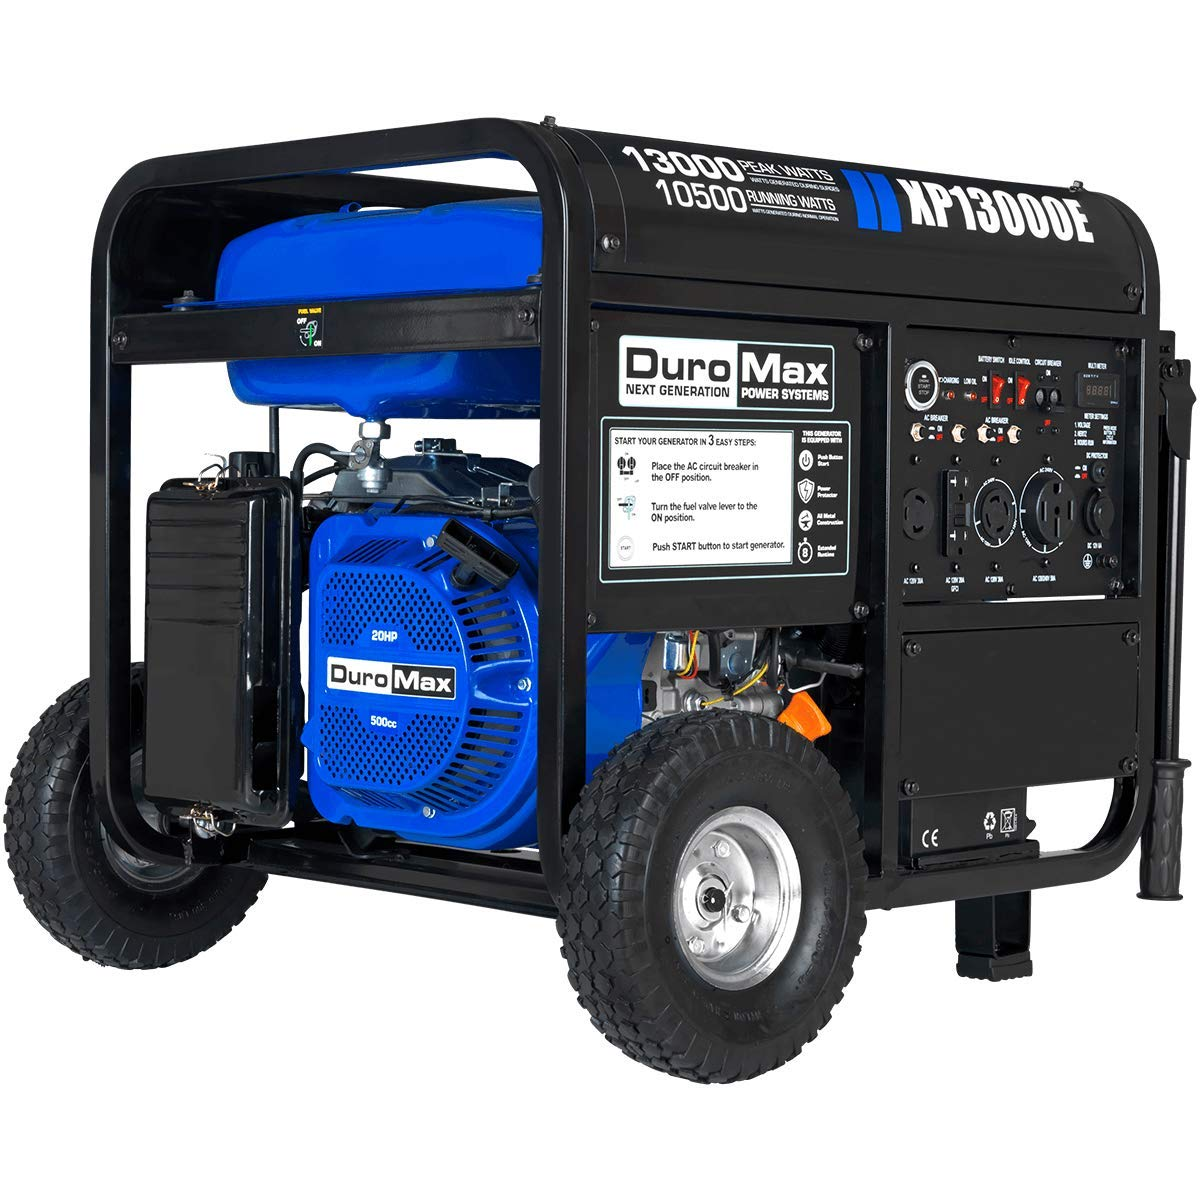 DuroMax XP13000E Gas Powered Portable Generator – 13000 Watt -Electric Start- Home Back Up RV Ready, 50 State Approved